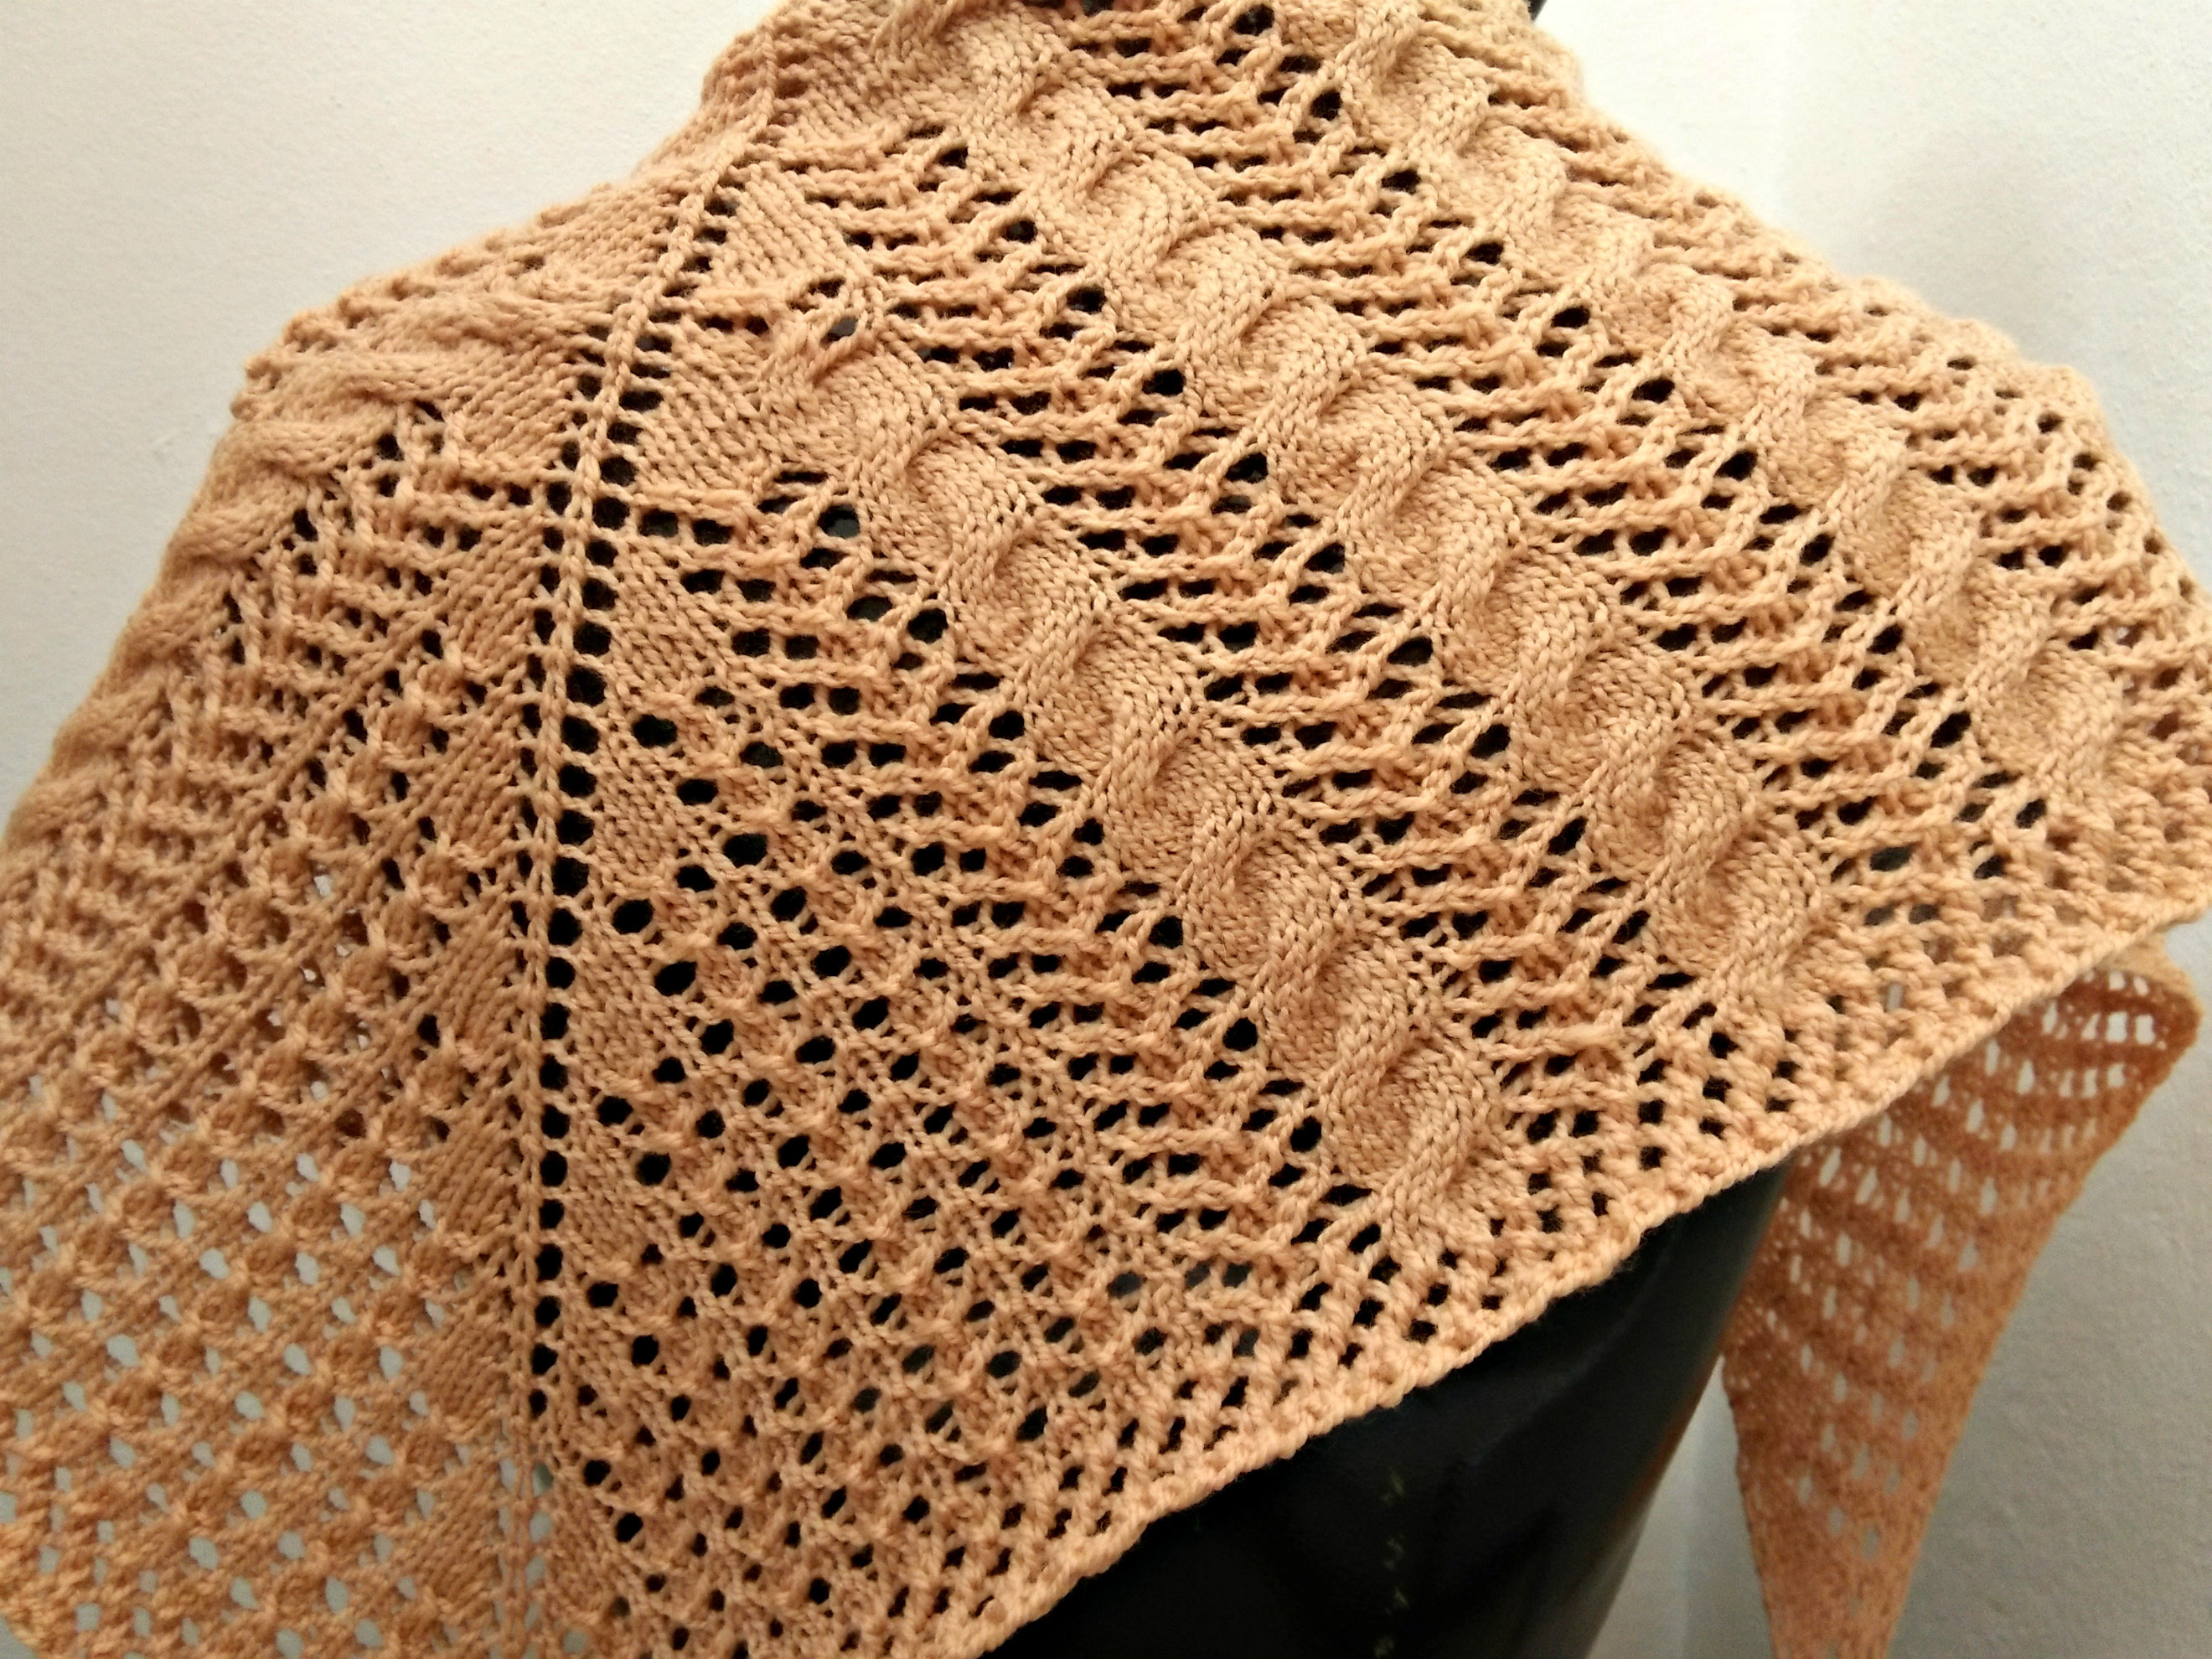 Knitting Lace Patterns Tips : This Man Knits Lace knitting tips, patterns, tutorials ...